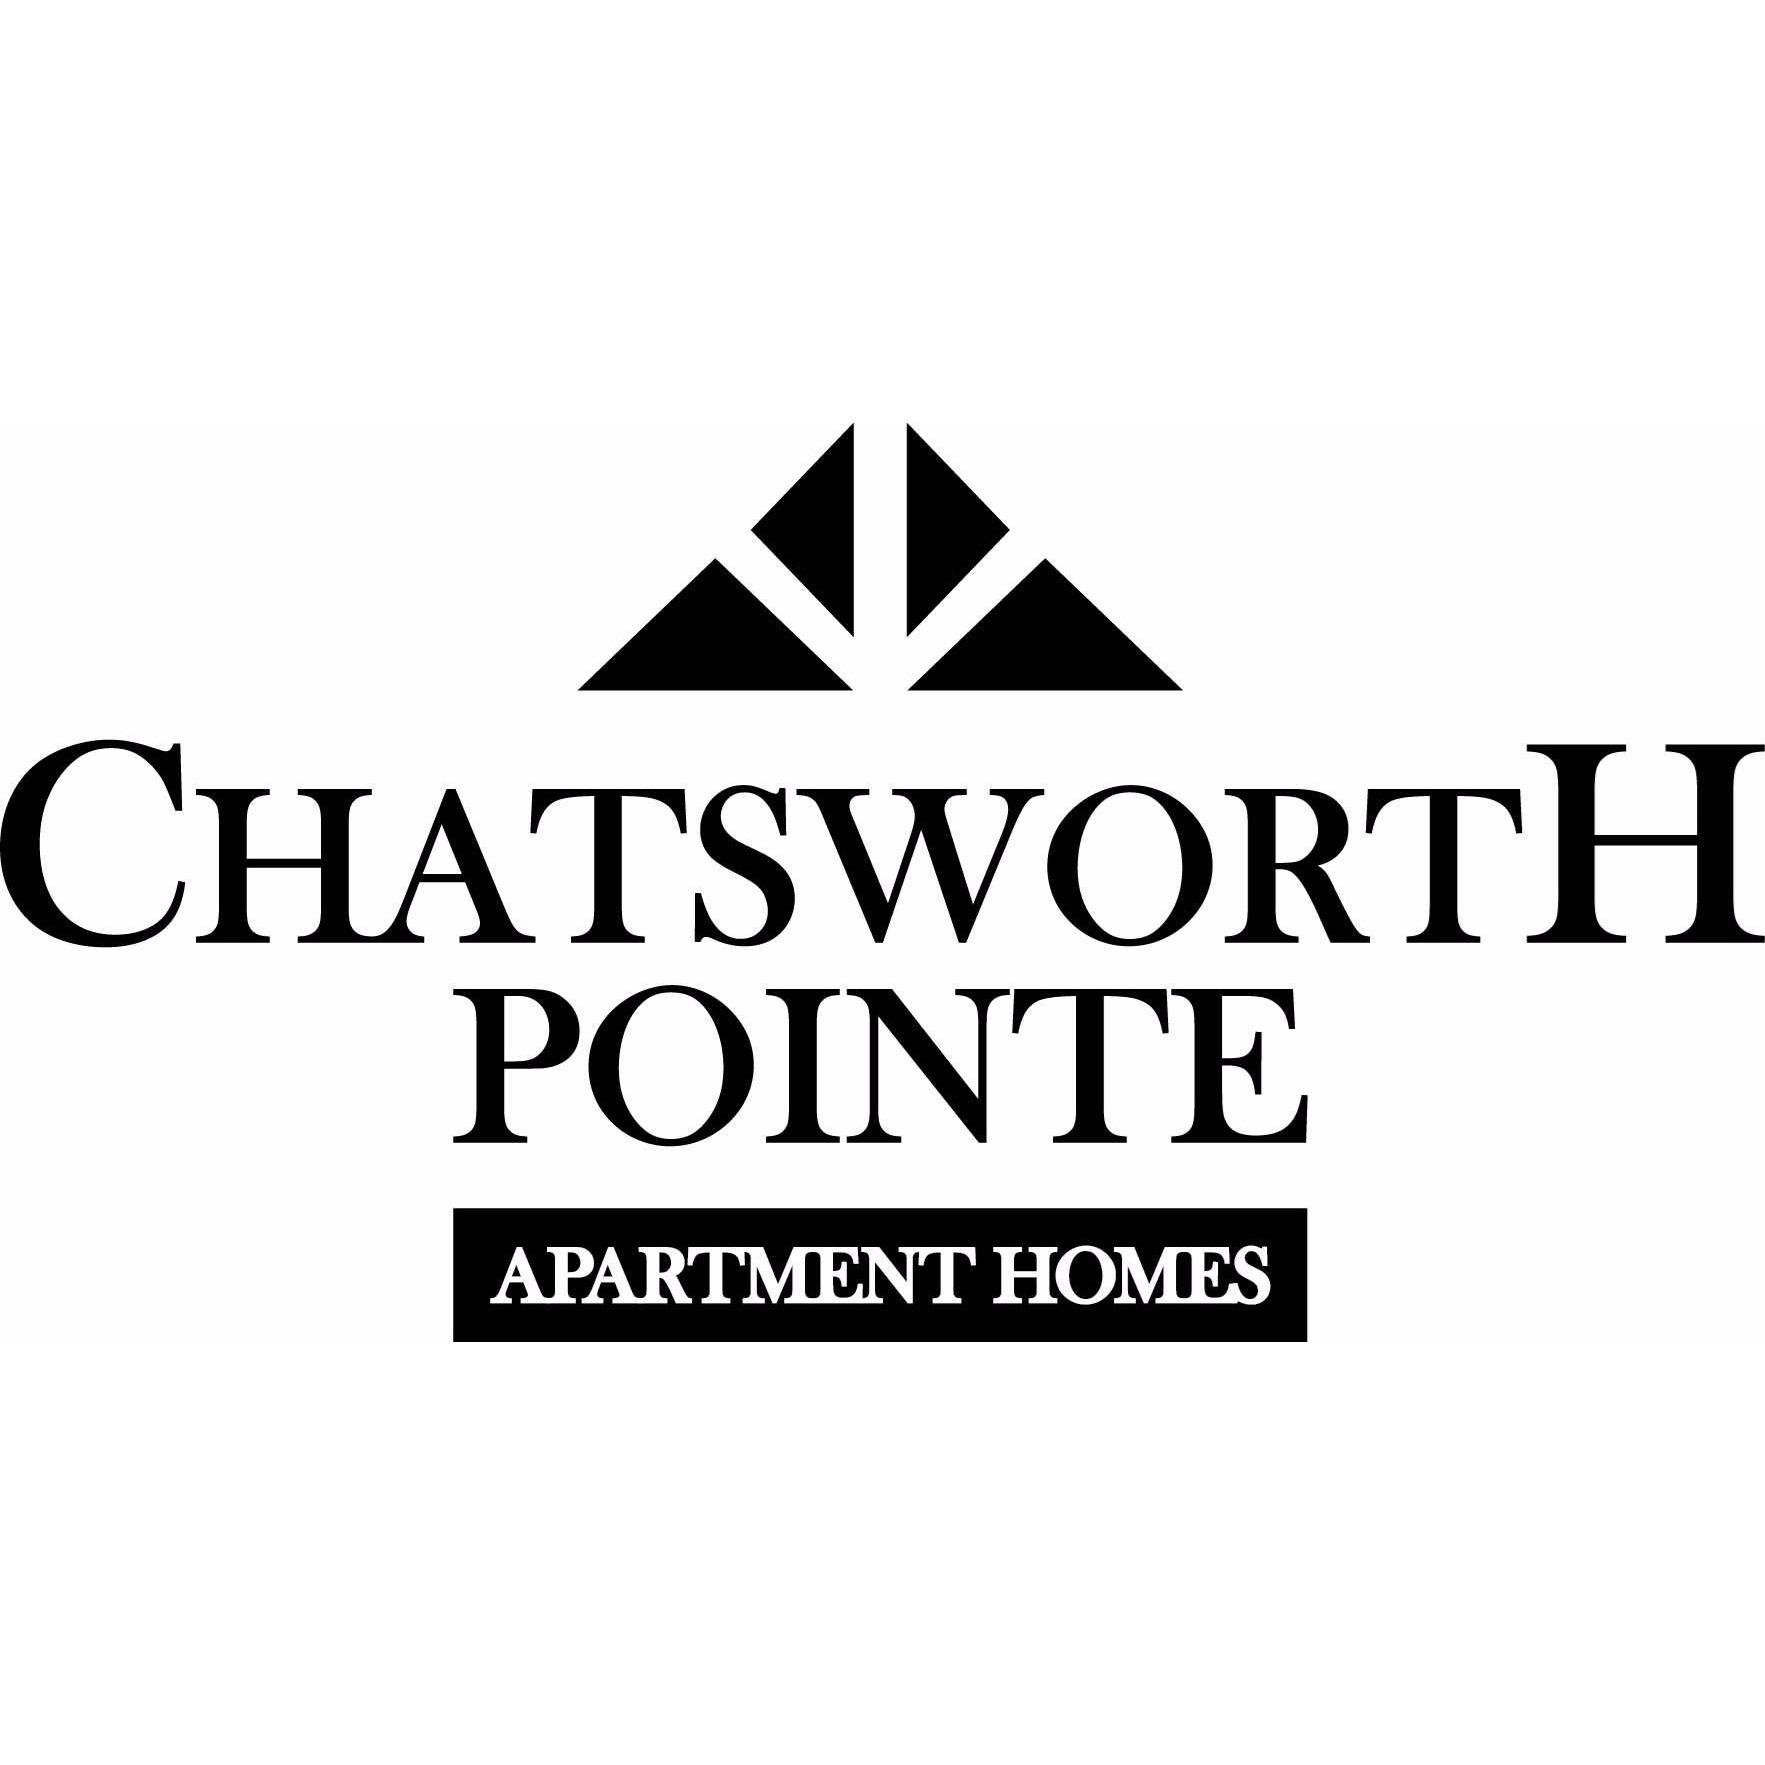 Chatsworth Pointe